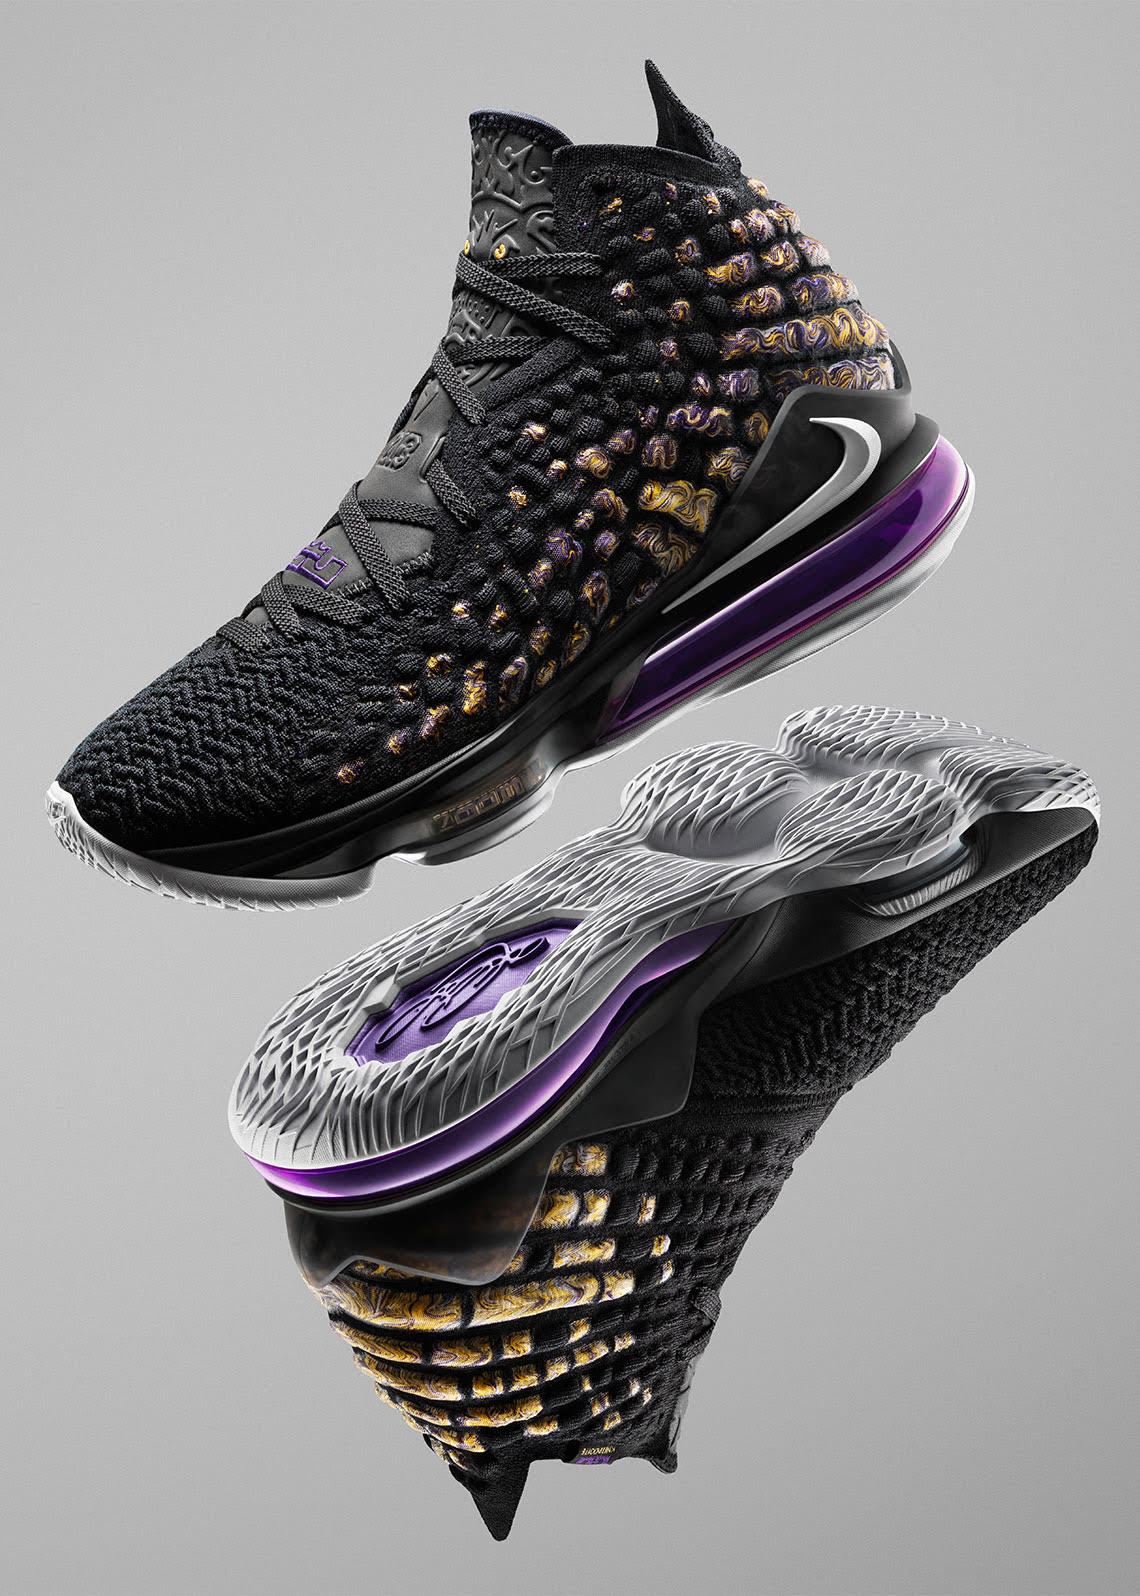 Nike LeBron 17 Black Purple Shoes